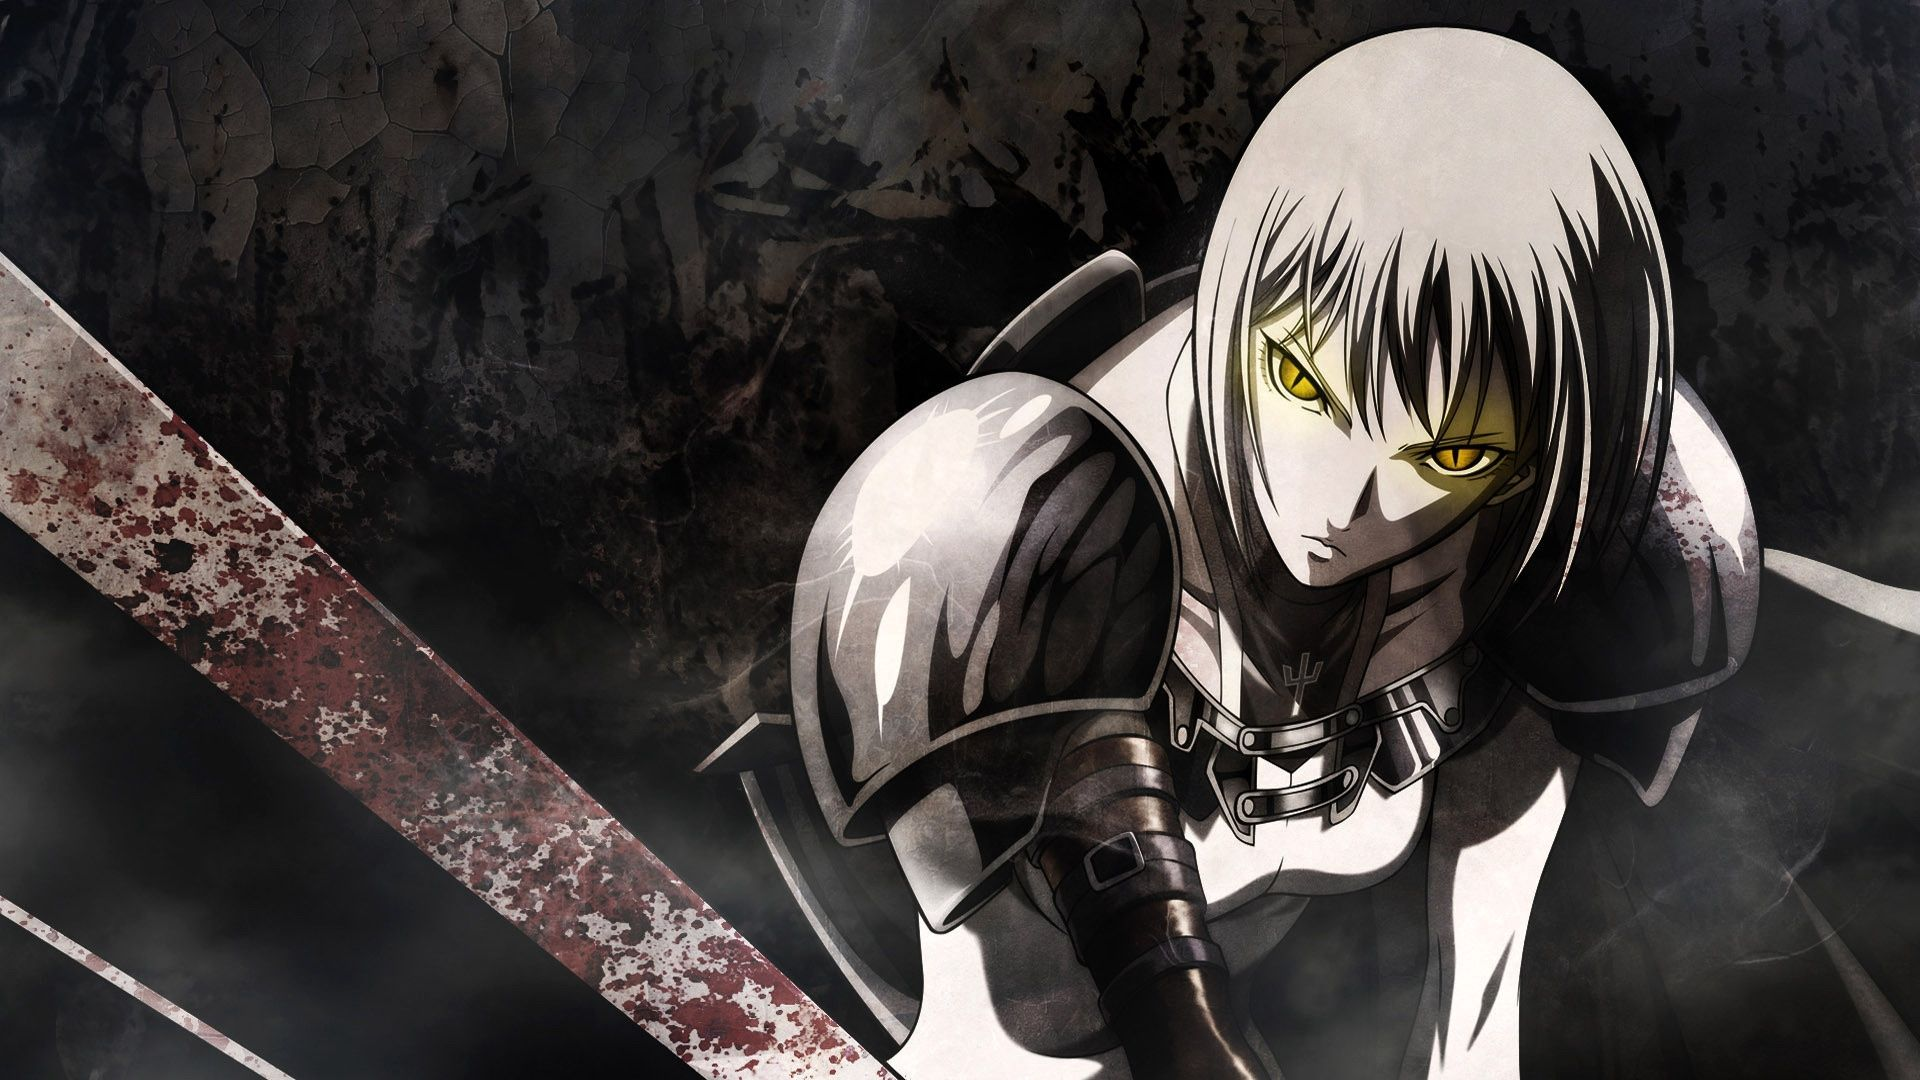 Download Wallpaper Anime Action Hd Download Wallpaper 1920x1080 Anime Sword Warrior Look 55 Pc Anime Wallpapers Downlo Good Anime Series Anime Clare Claymore Action anime wallpaper free download